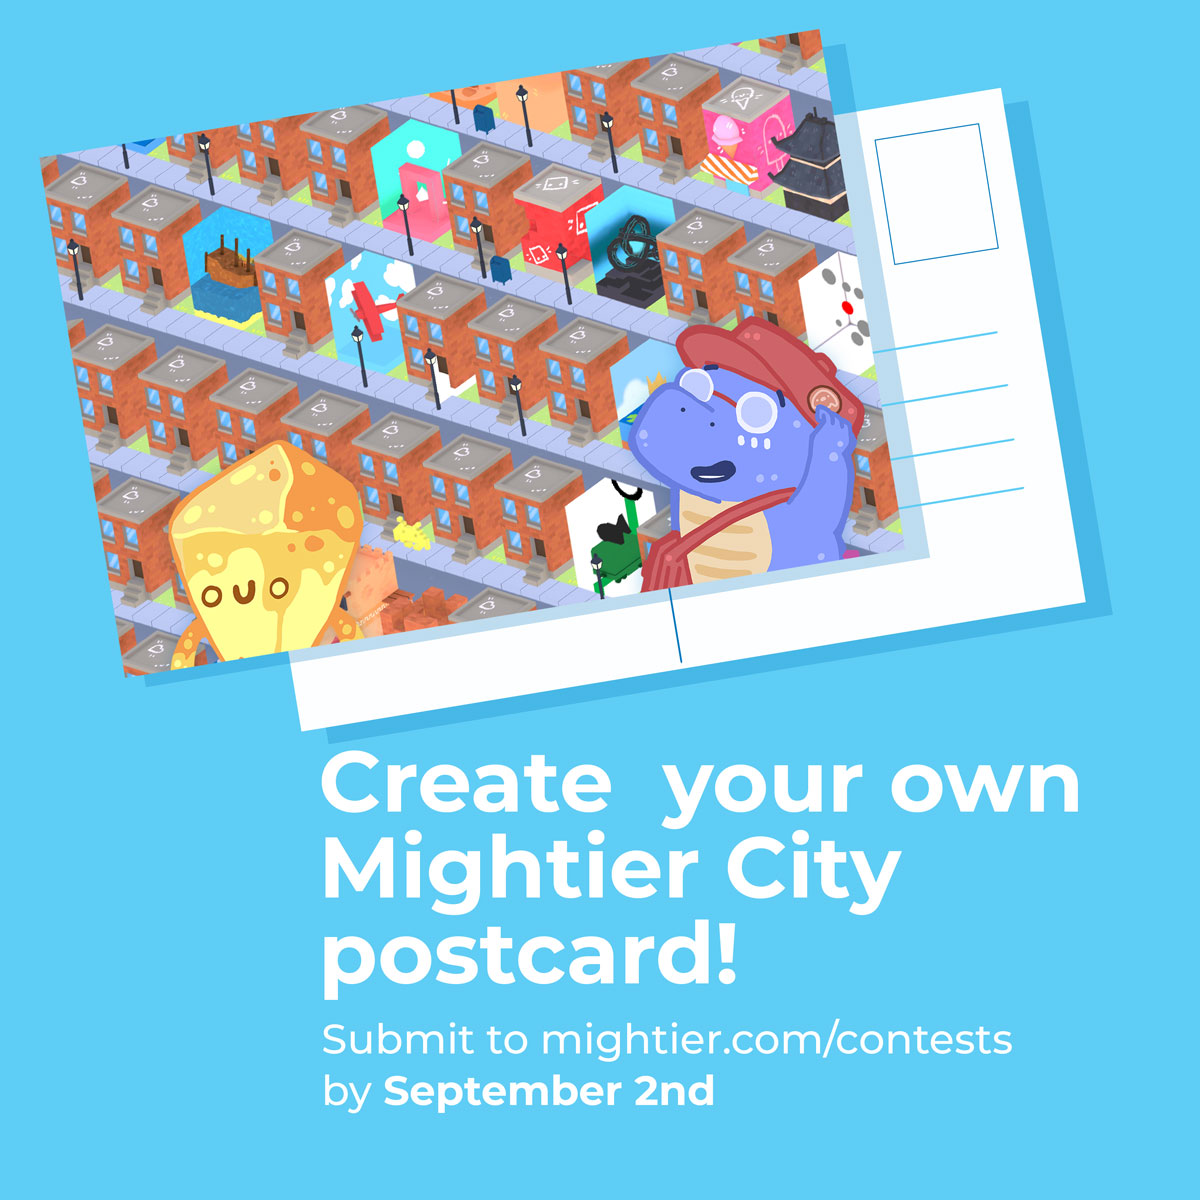 Create your own Mightier City postcard! Submit to  mightier.com/contests .